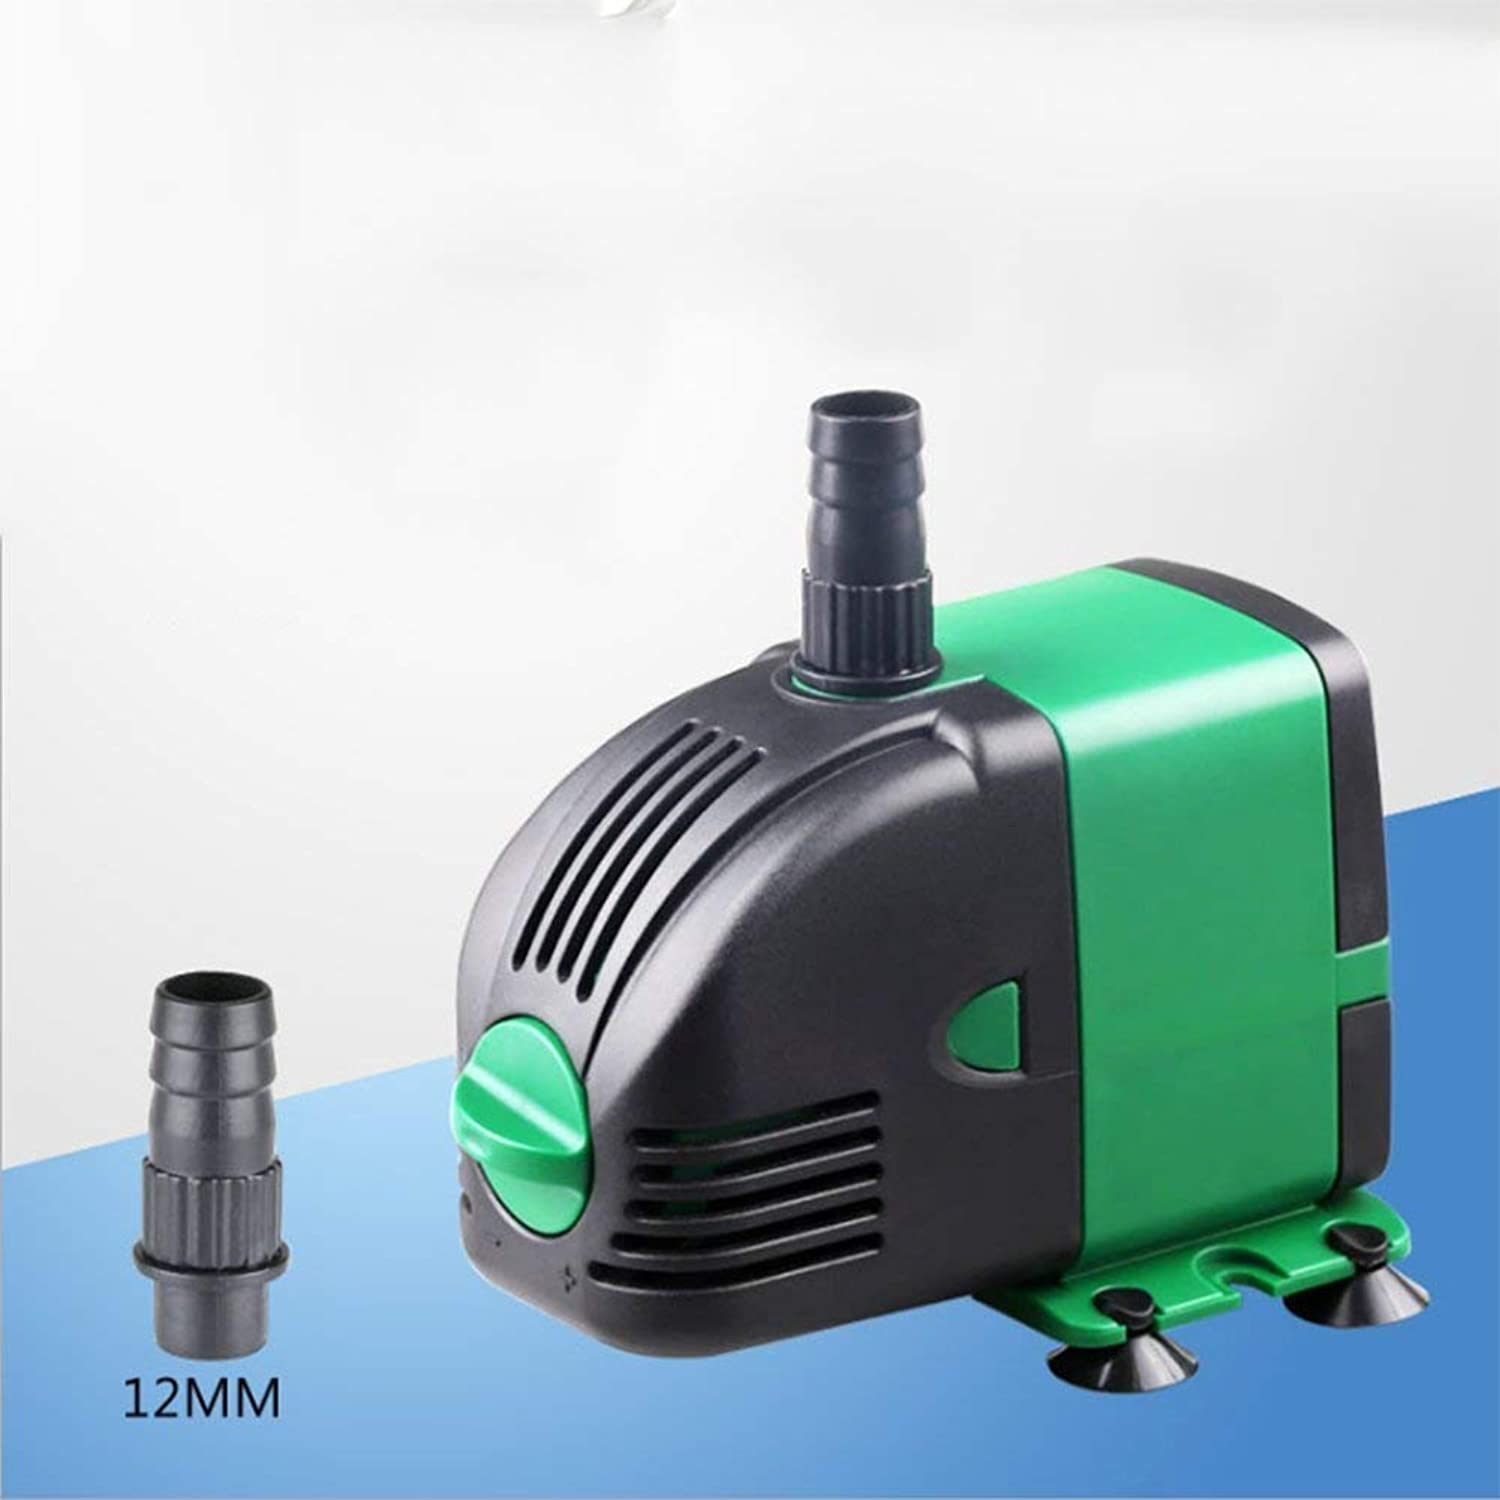 Drrie Submersible Water Pump for Aquarium 220V Pond Type Circulation Pump,6W,24W